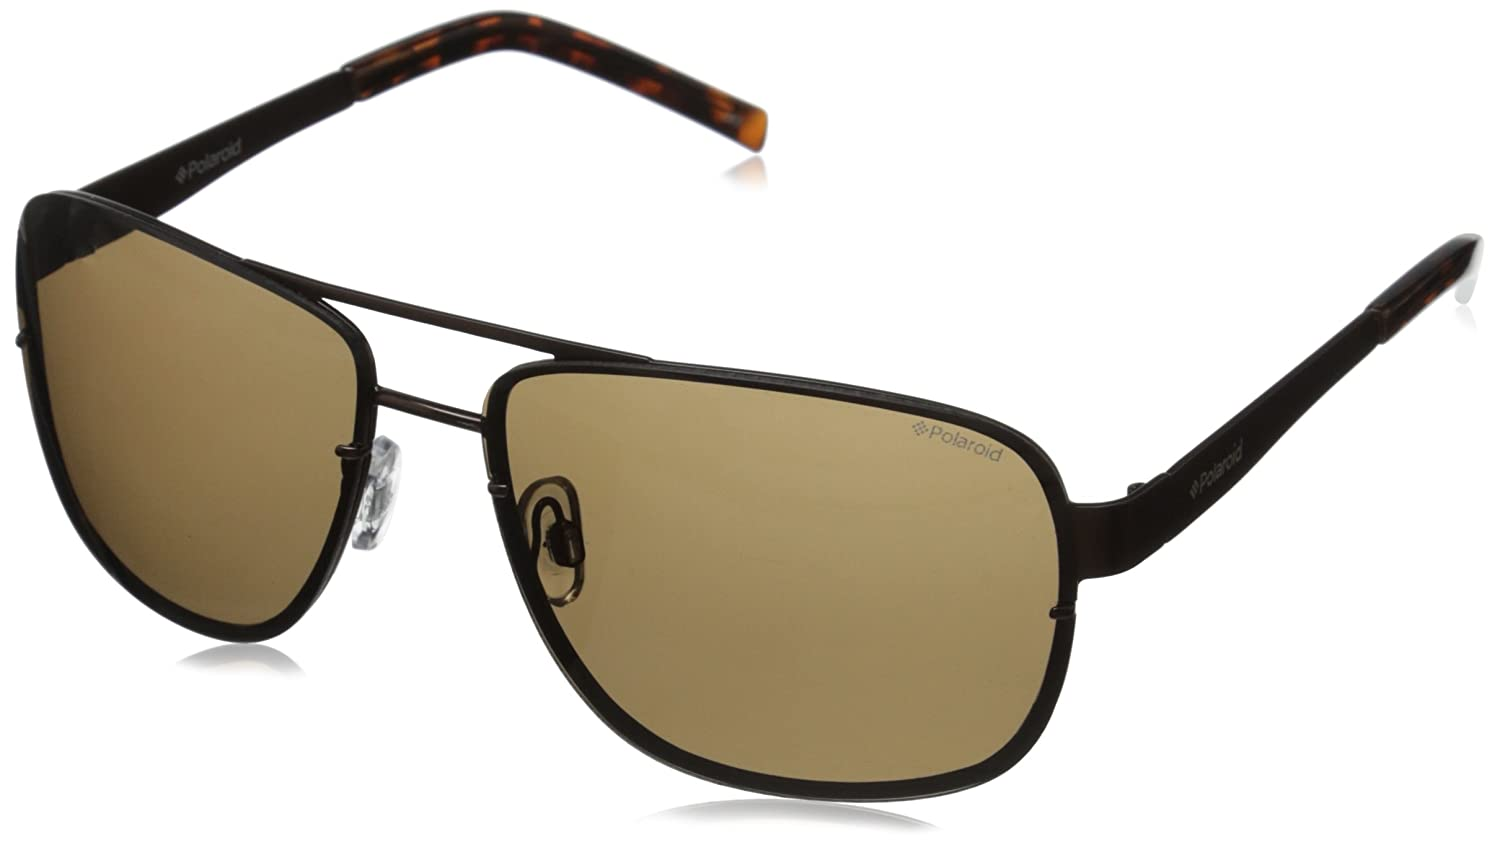 Amazon.com: Polaroid Sunglasses Mens PLD2025S Polarized Rectangular Sunglasses, Brown & Brown Polarized, 63 mm: Clothing